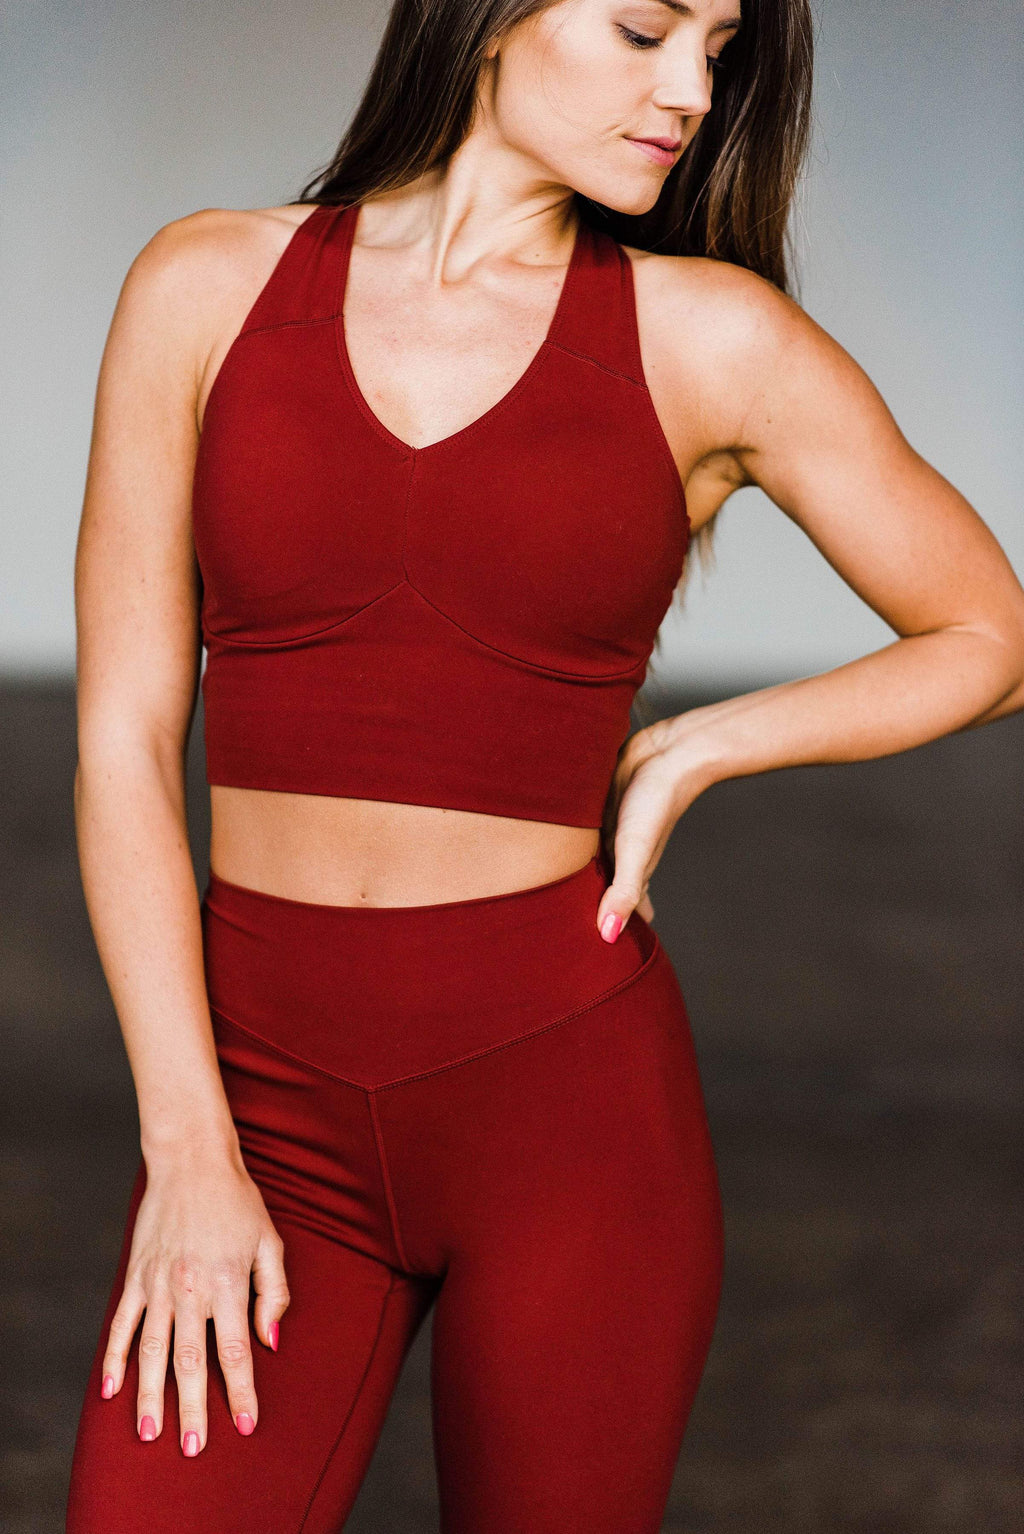 Balance Athletica Tops XS The Define Top - Autumn 101A-XS